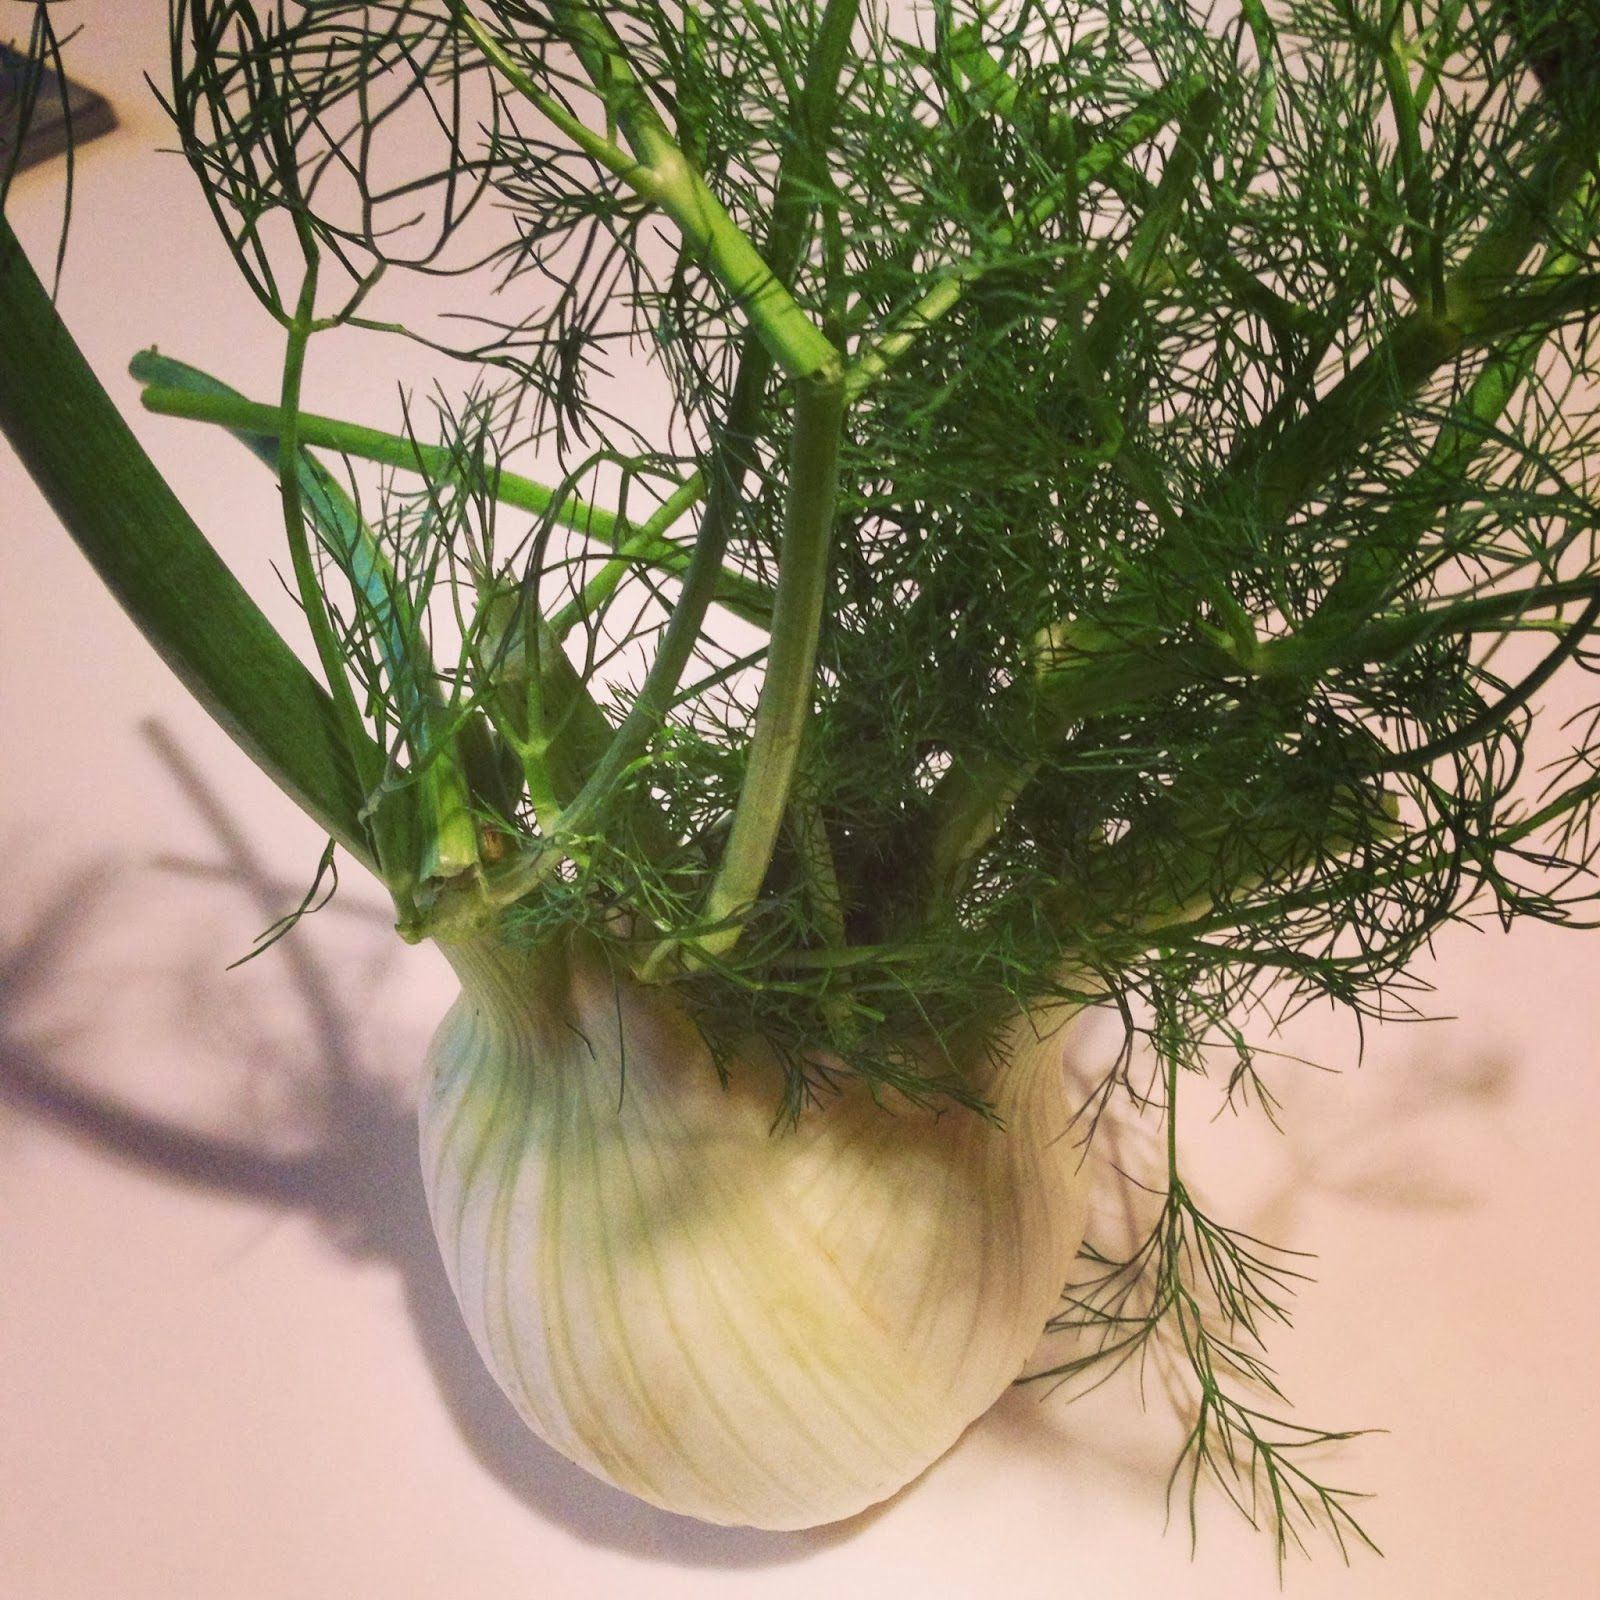 tips for cooking and eating fennel